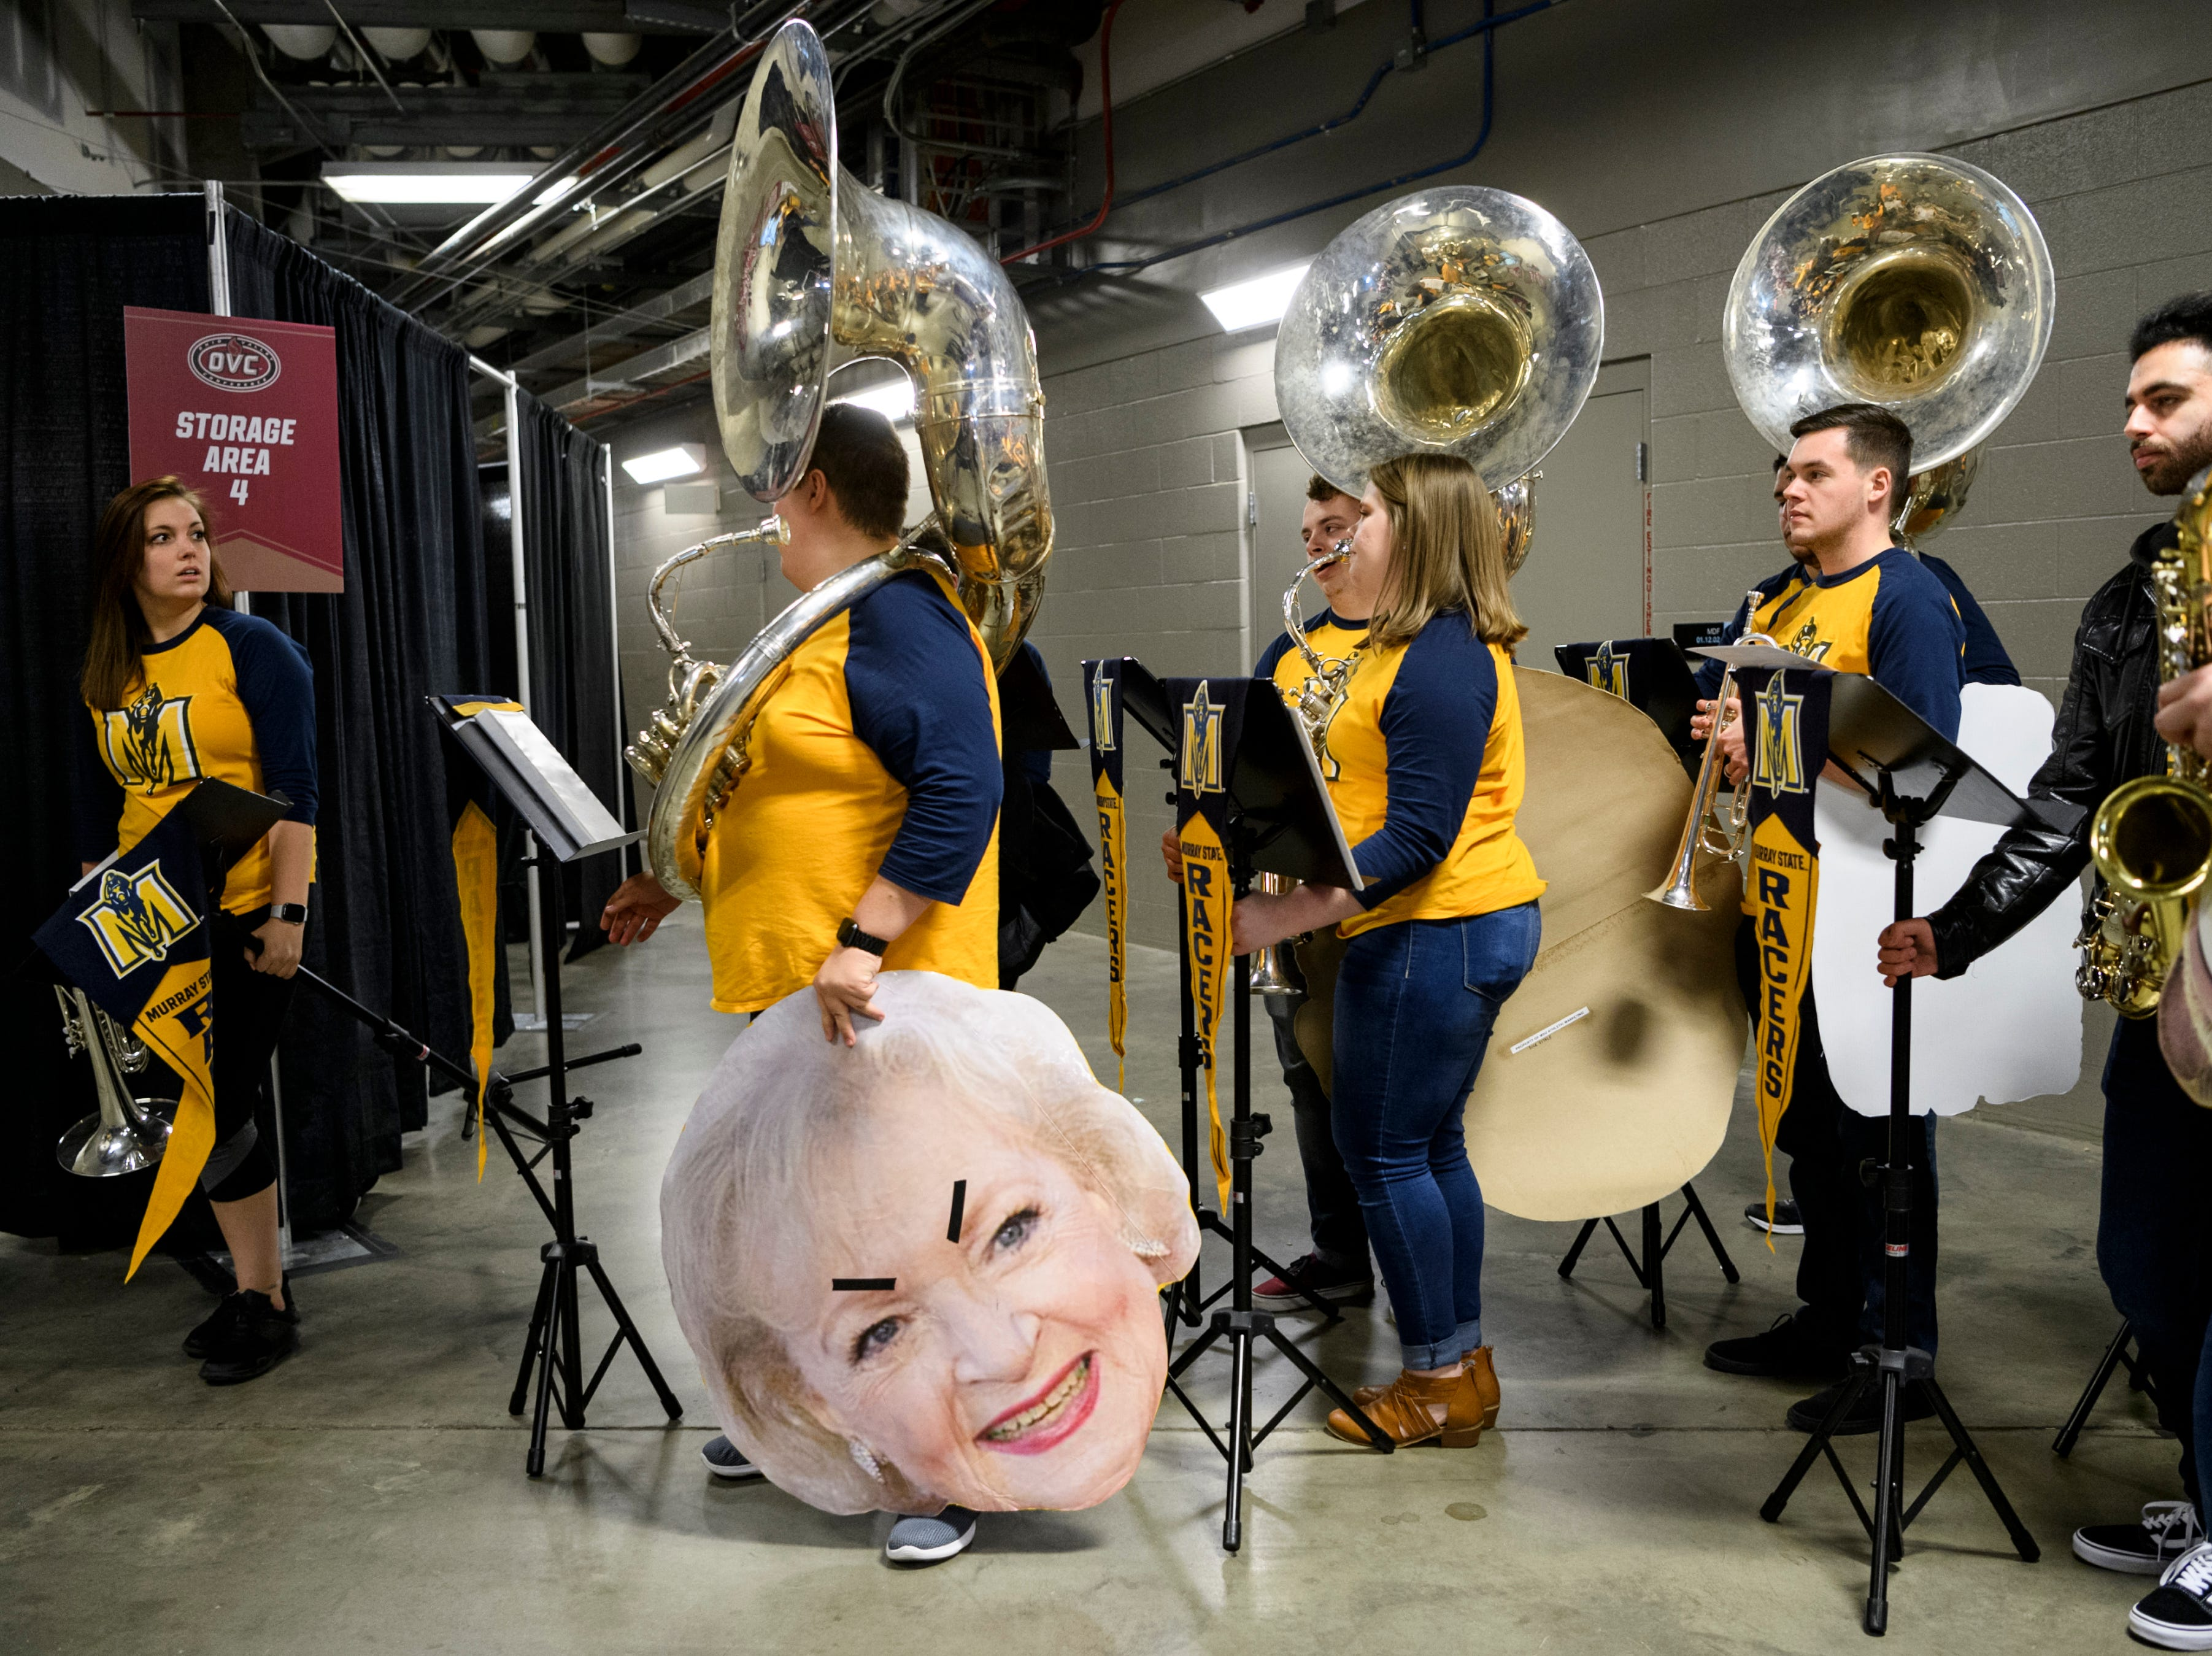 Members of the Murray State Racer pep band prepare to walk into the arena to set up before their women's basketball team plays the University of Tennessee Martin at Ford Center in Evansville, Ind., Thursday, March 7, 2019.